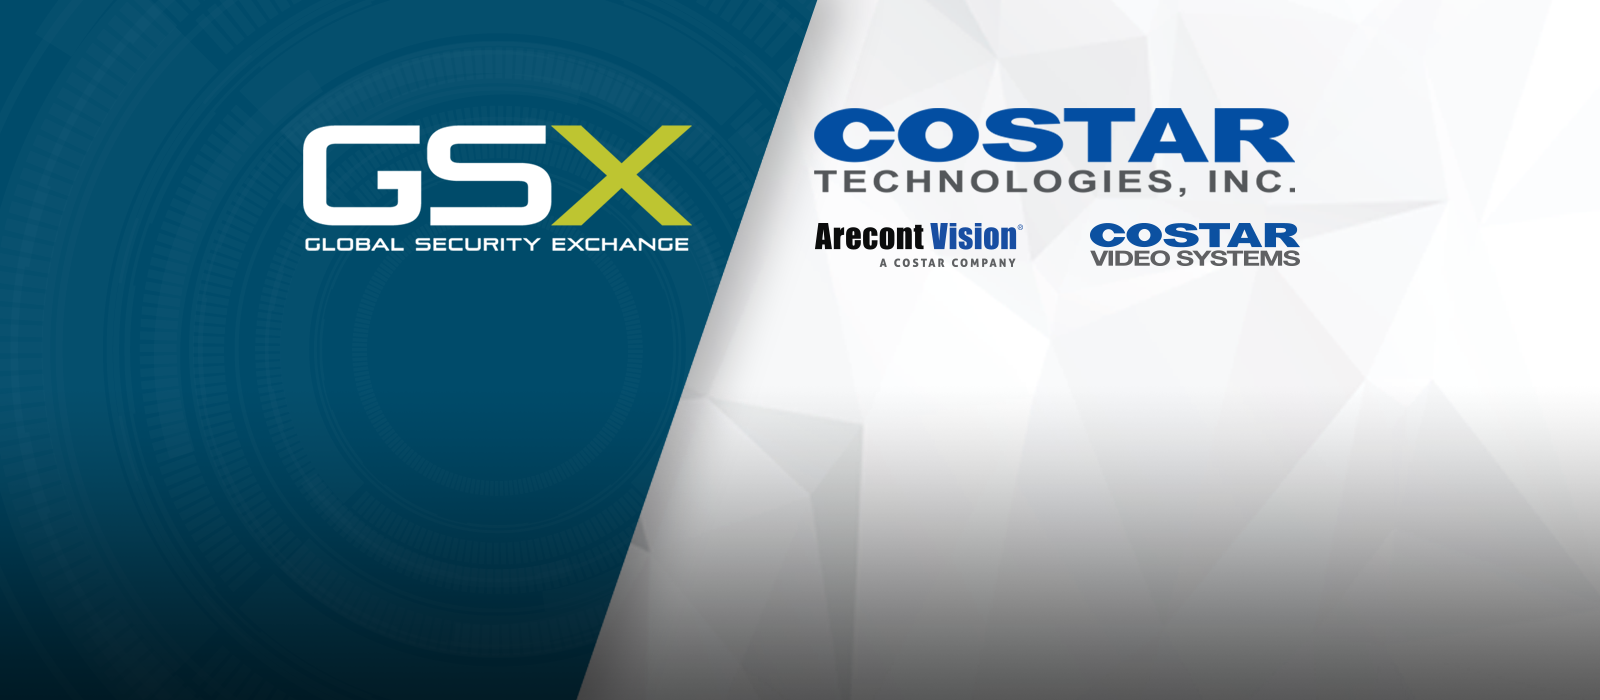 Arecont Vision Costar